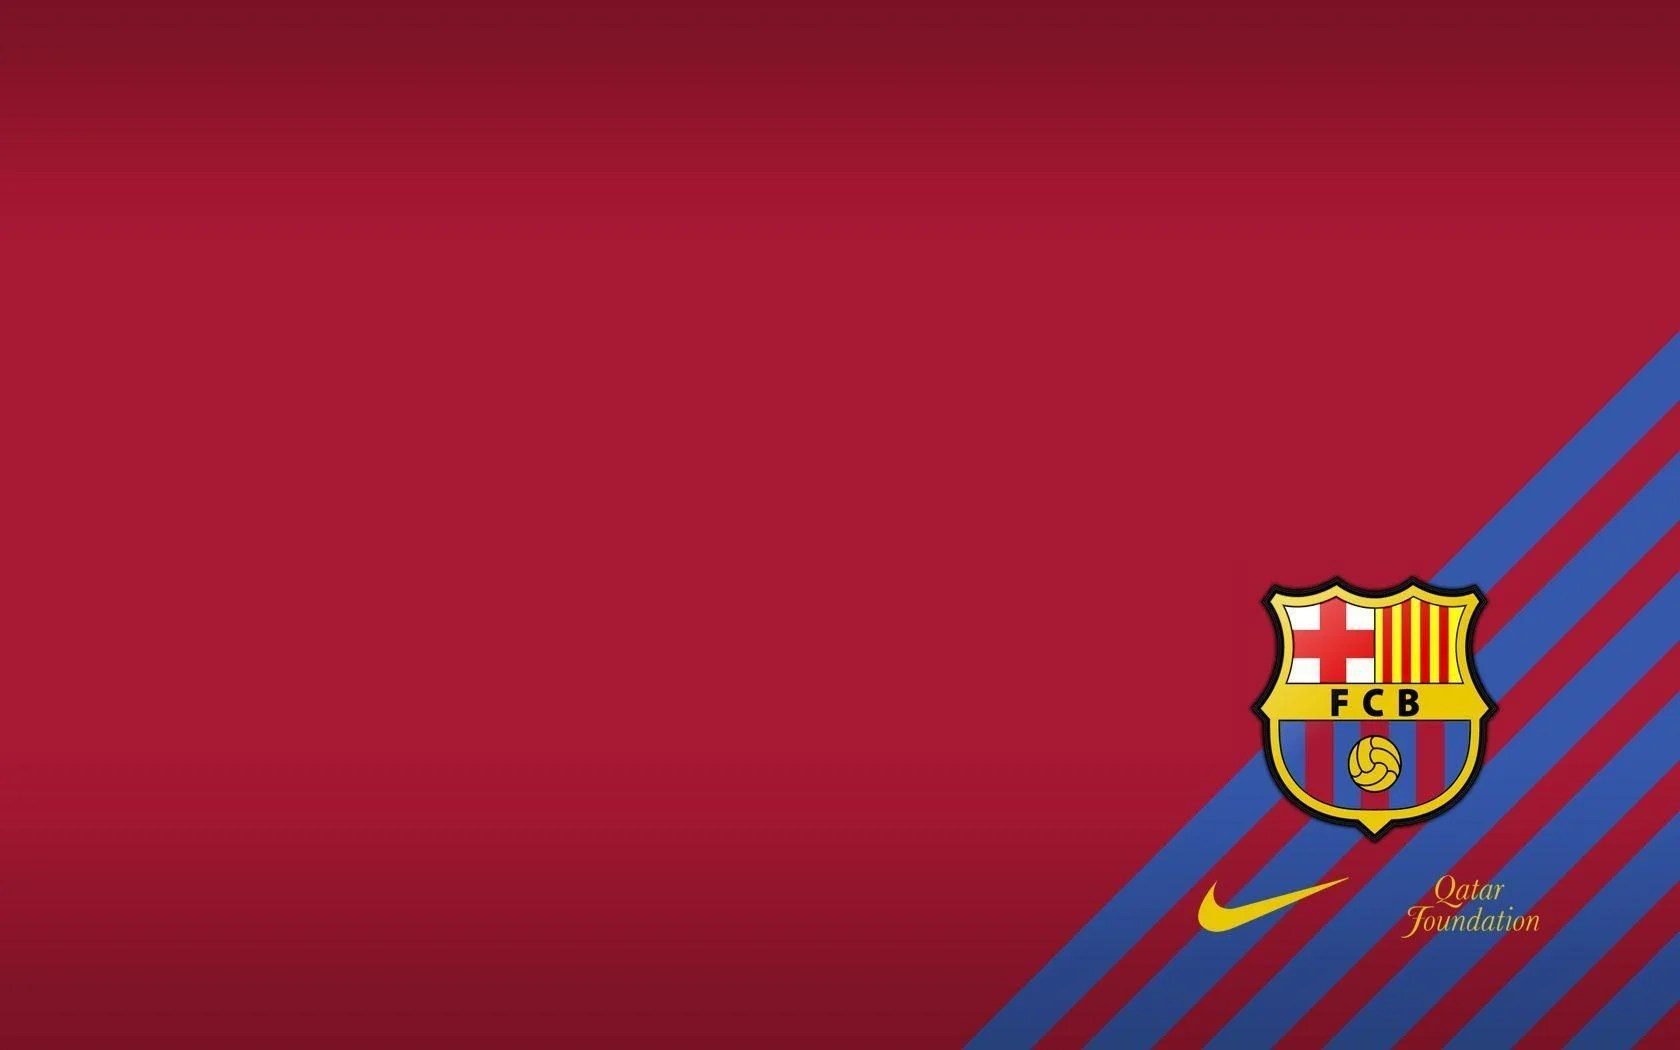 Background Untuk Birthday Fc Barcelona 2017 Wallpapers - Wallpaper Cave